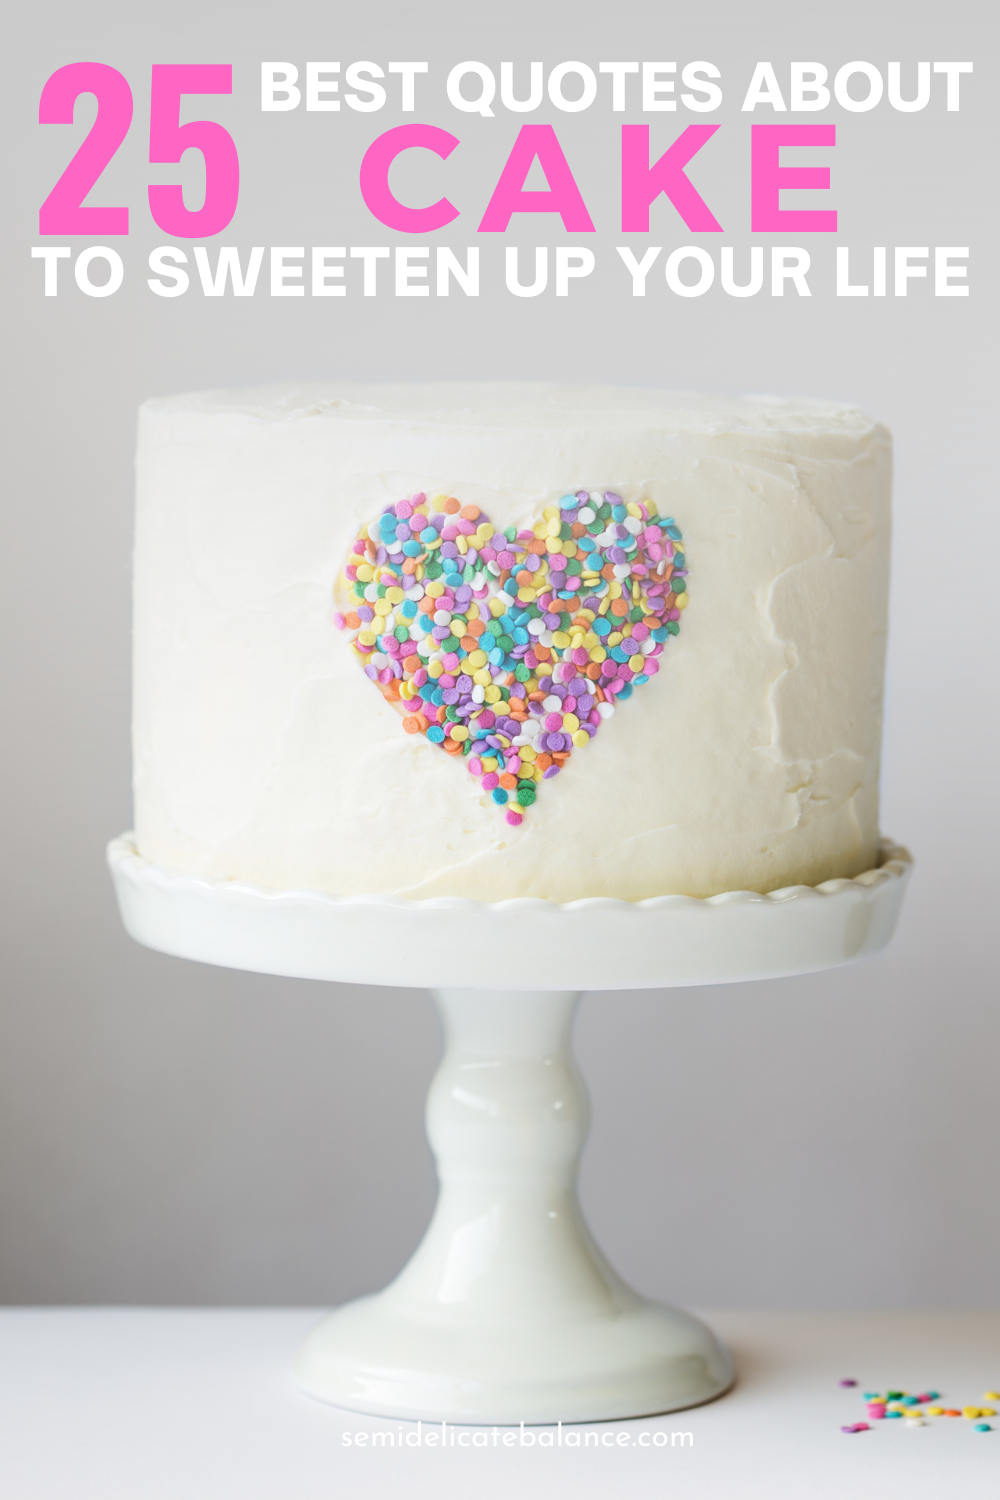 Best Quotes About Cake to Celebrate Just How Delicious It is, Sweet Sayings About Cake